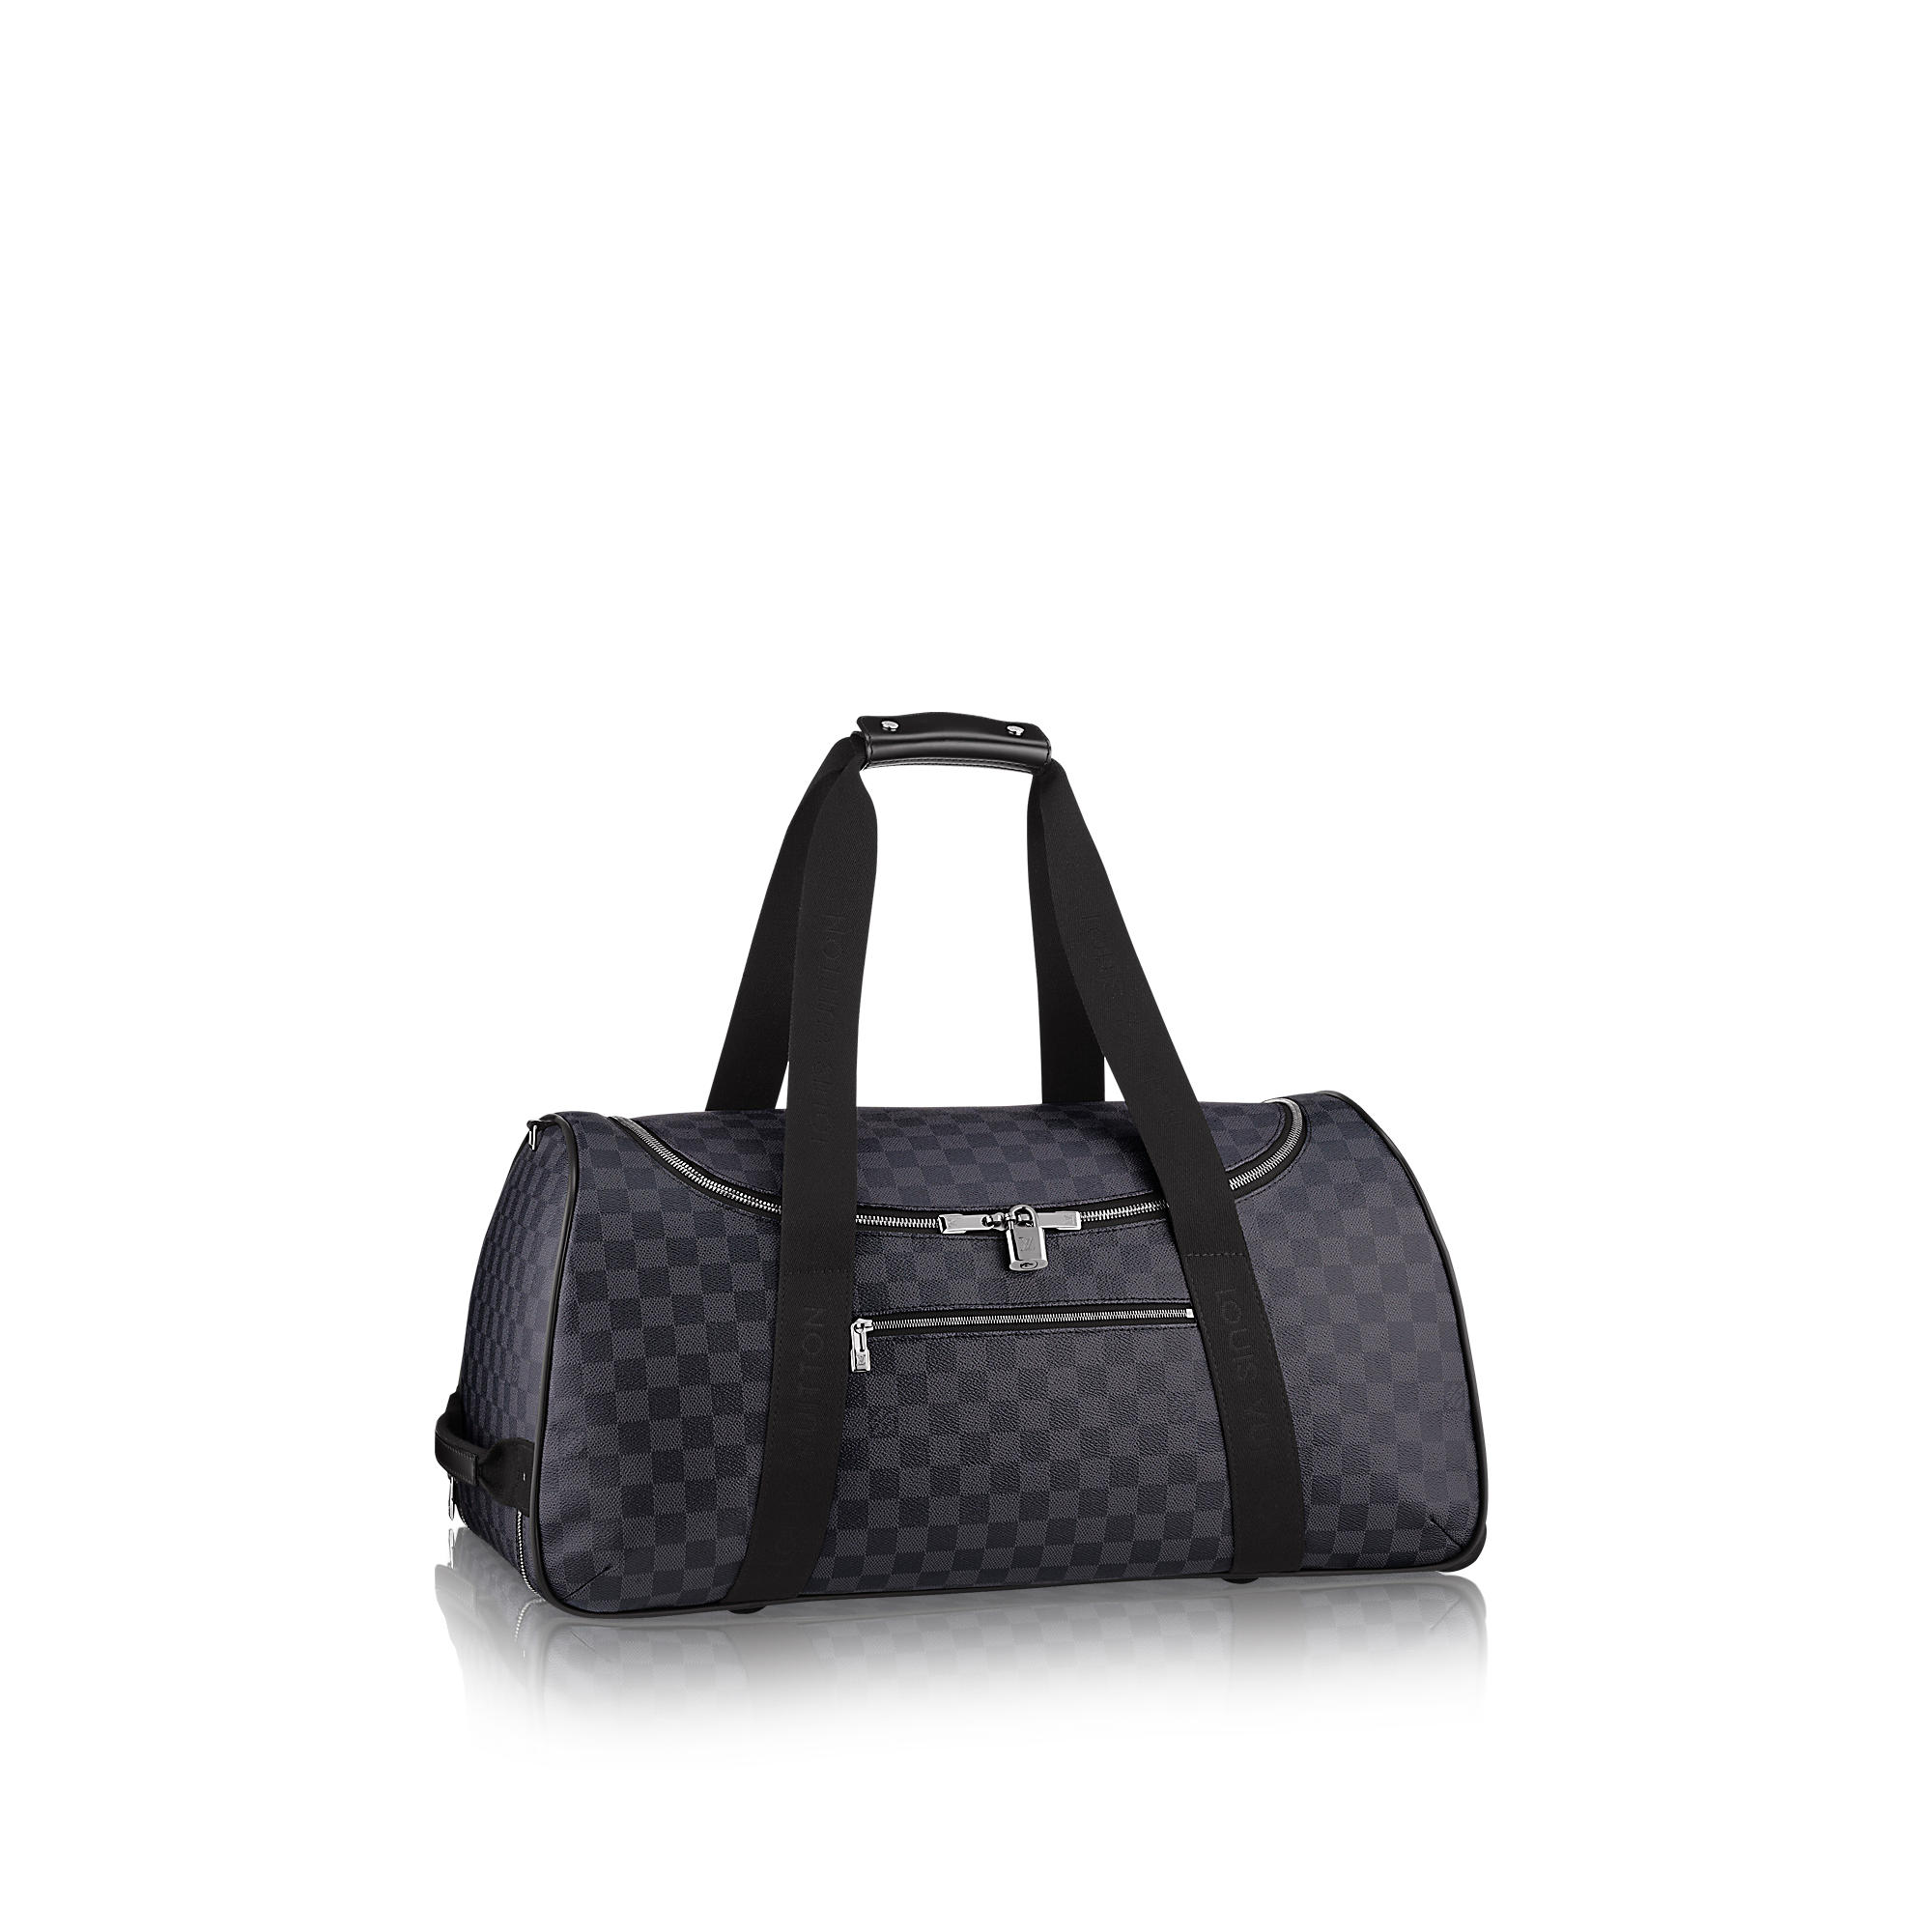 Louis Vuitton Uomo Neo Eole 55